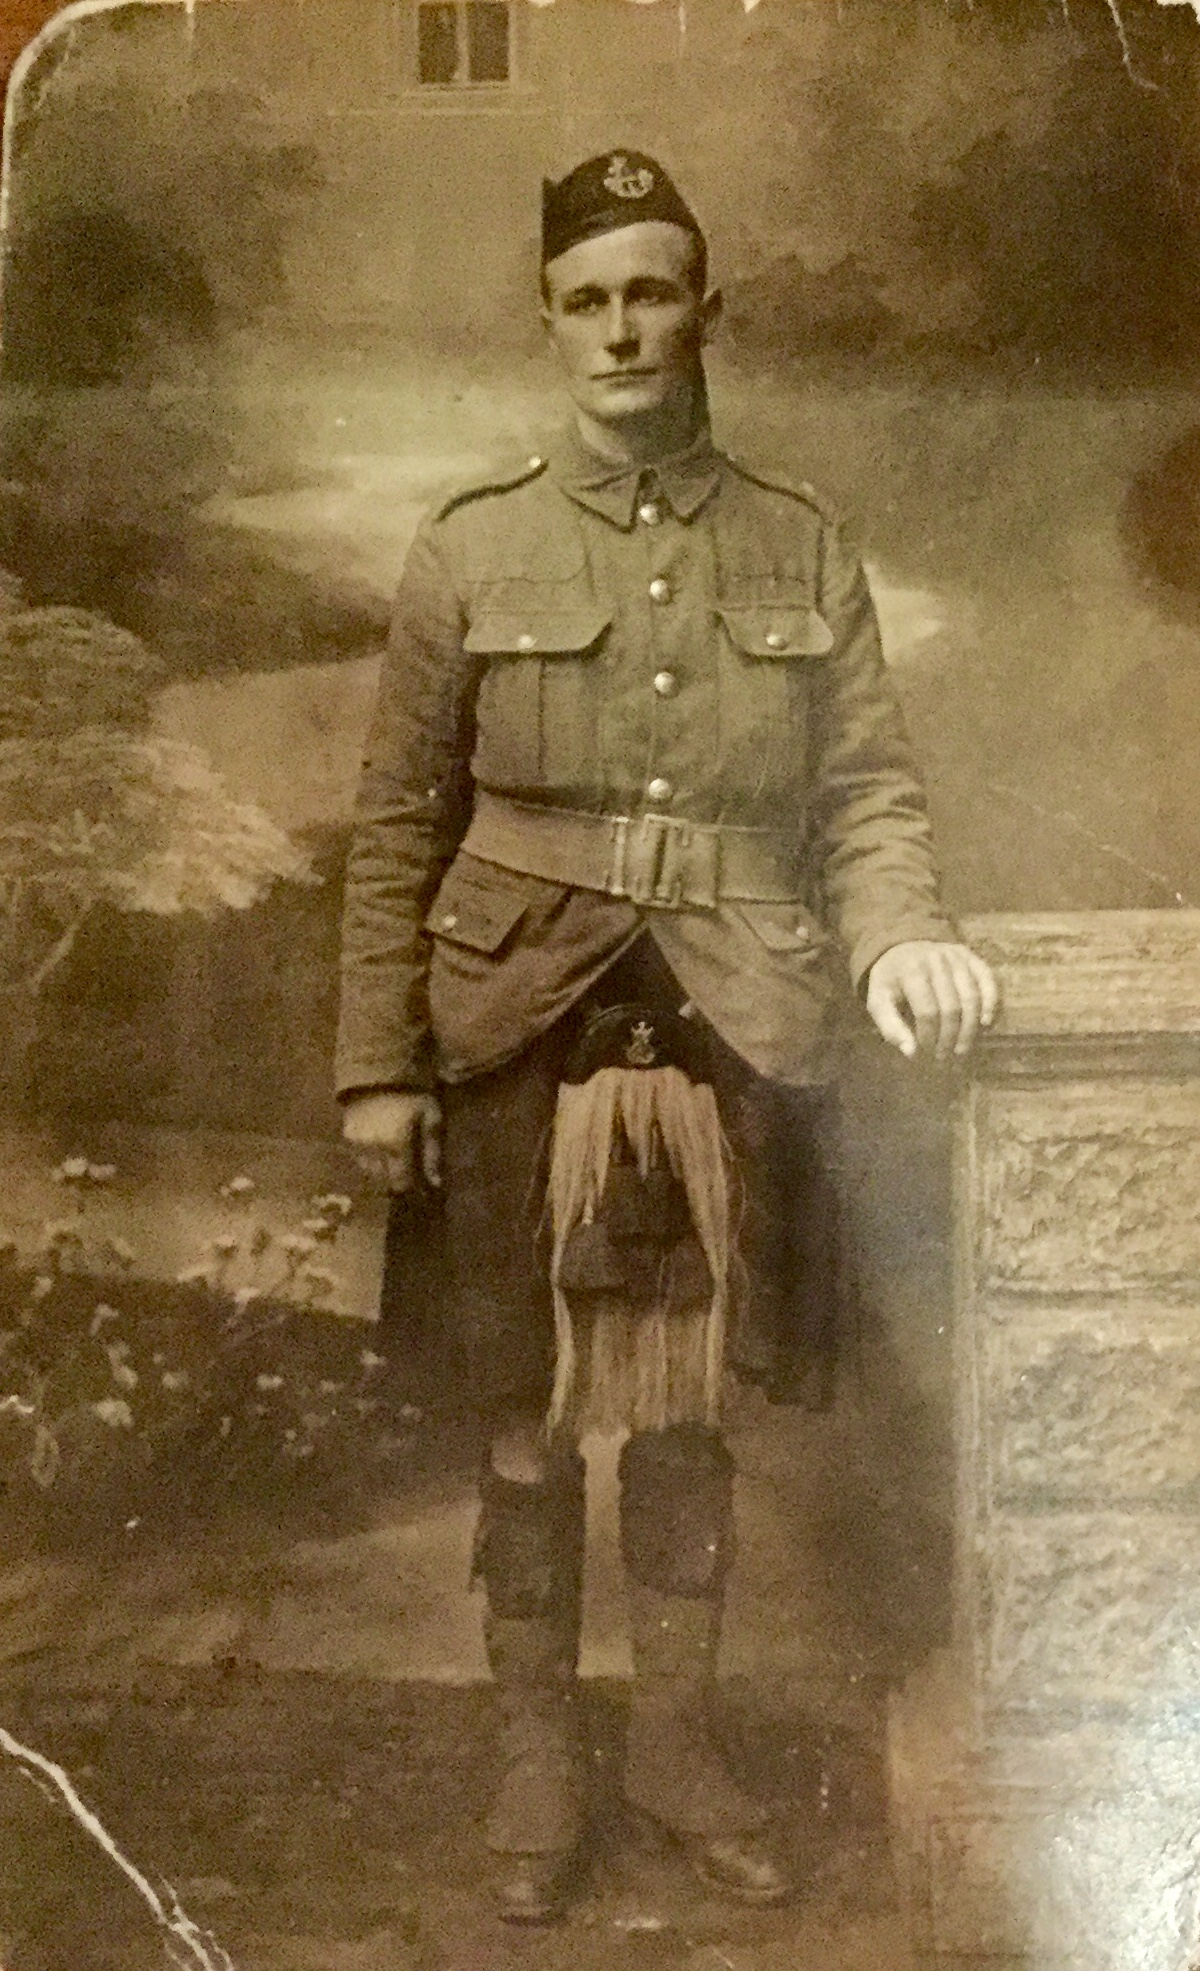 Photo of John Twamley– This was my great uncle. He emigrated to Canada before WWI and fought with the Canadian Highlanders. We are very proud of him.